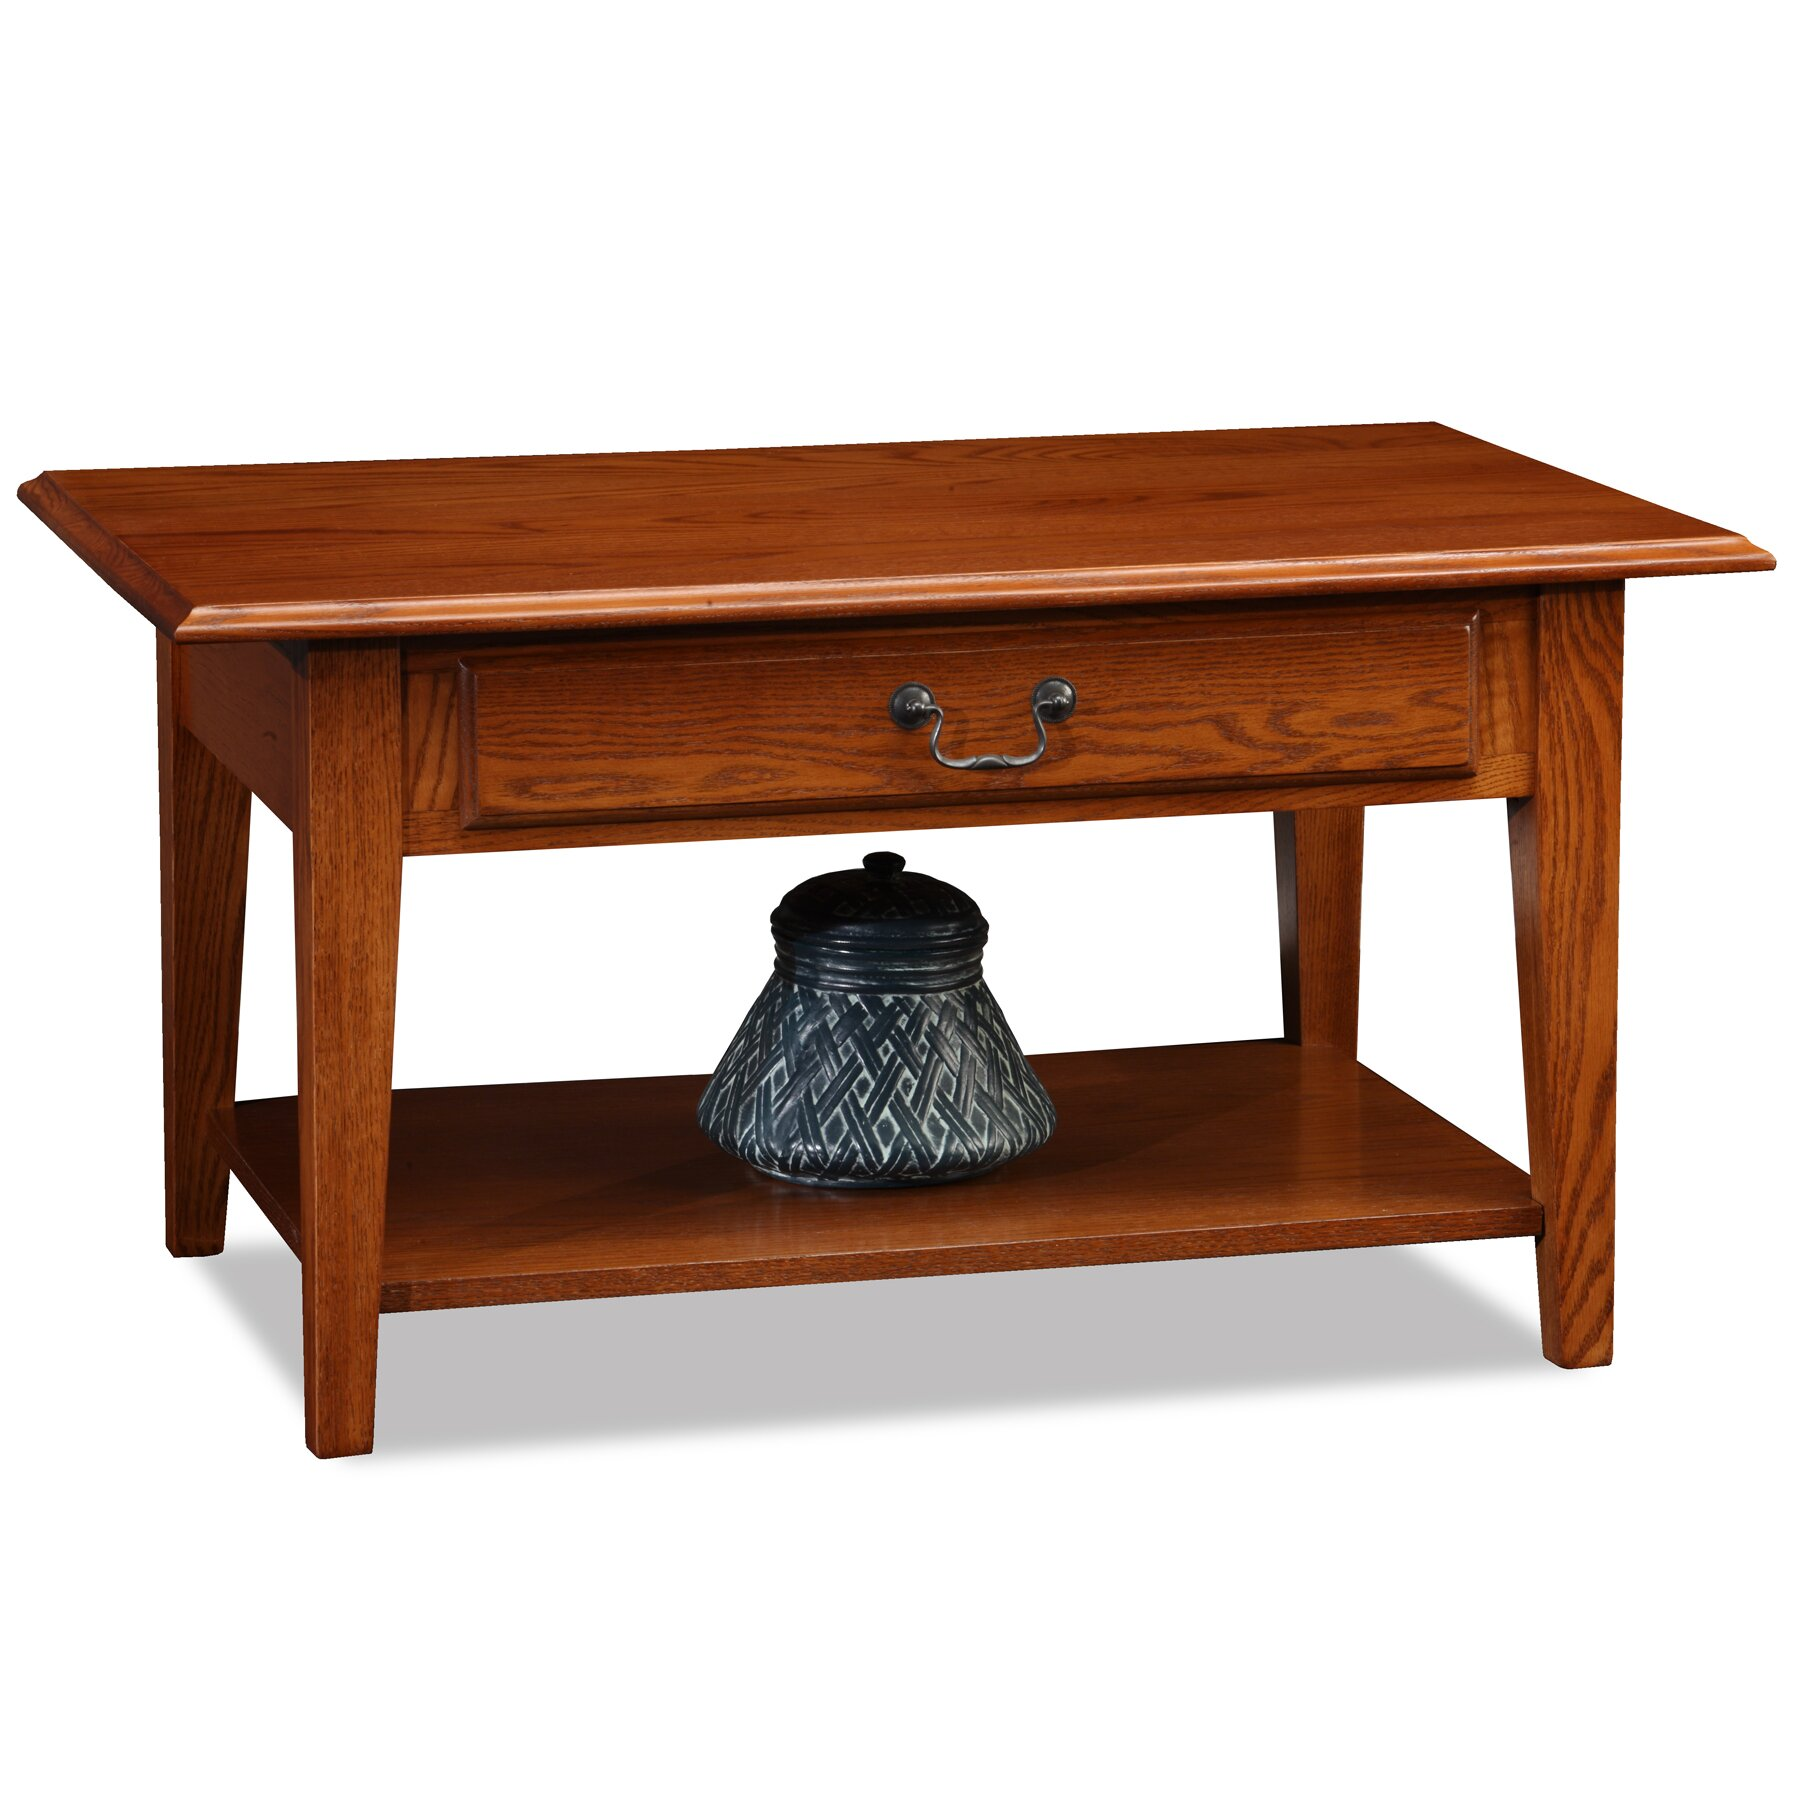 Leick shaker coffee table reviews wayfair for I furniture reviews